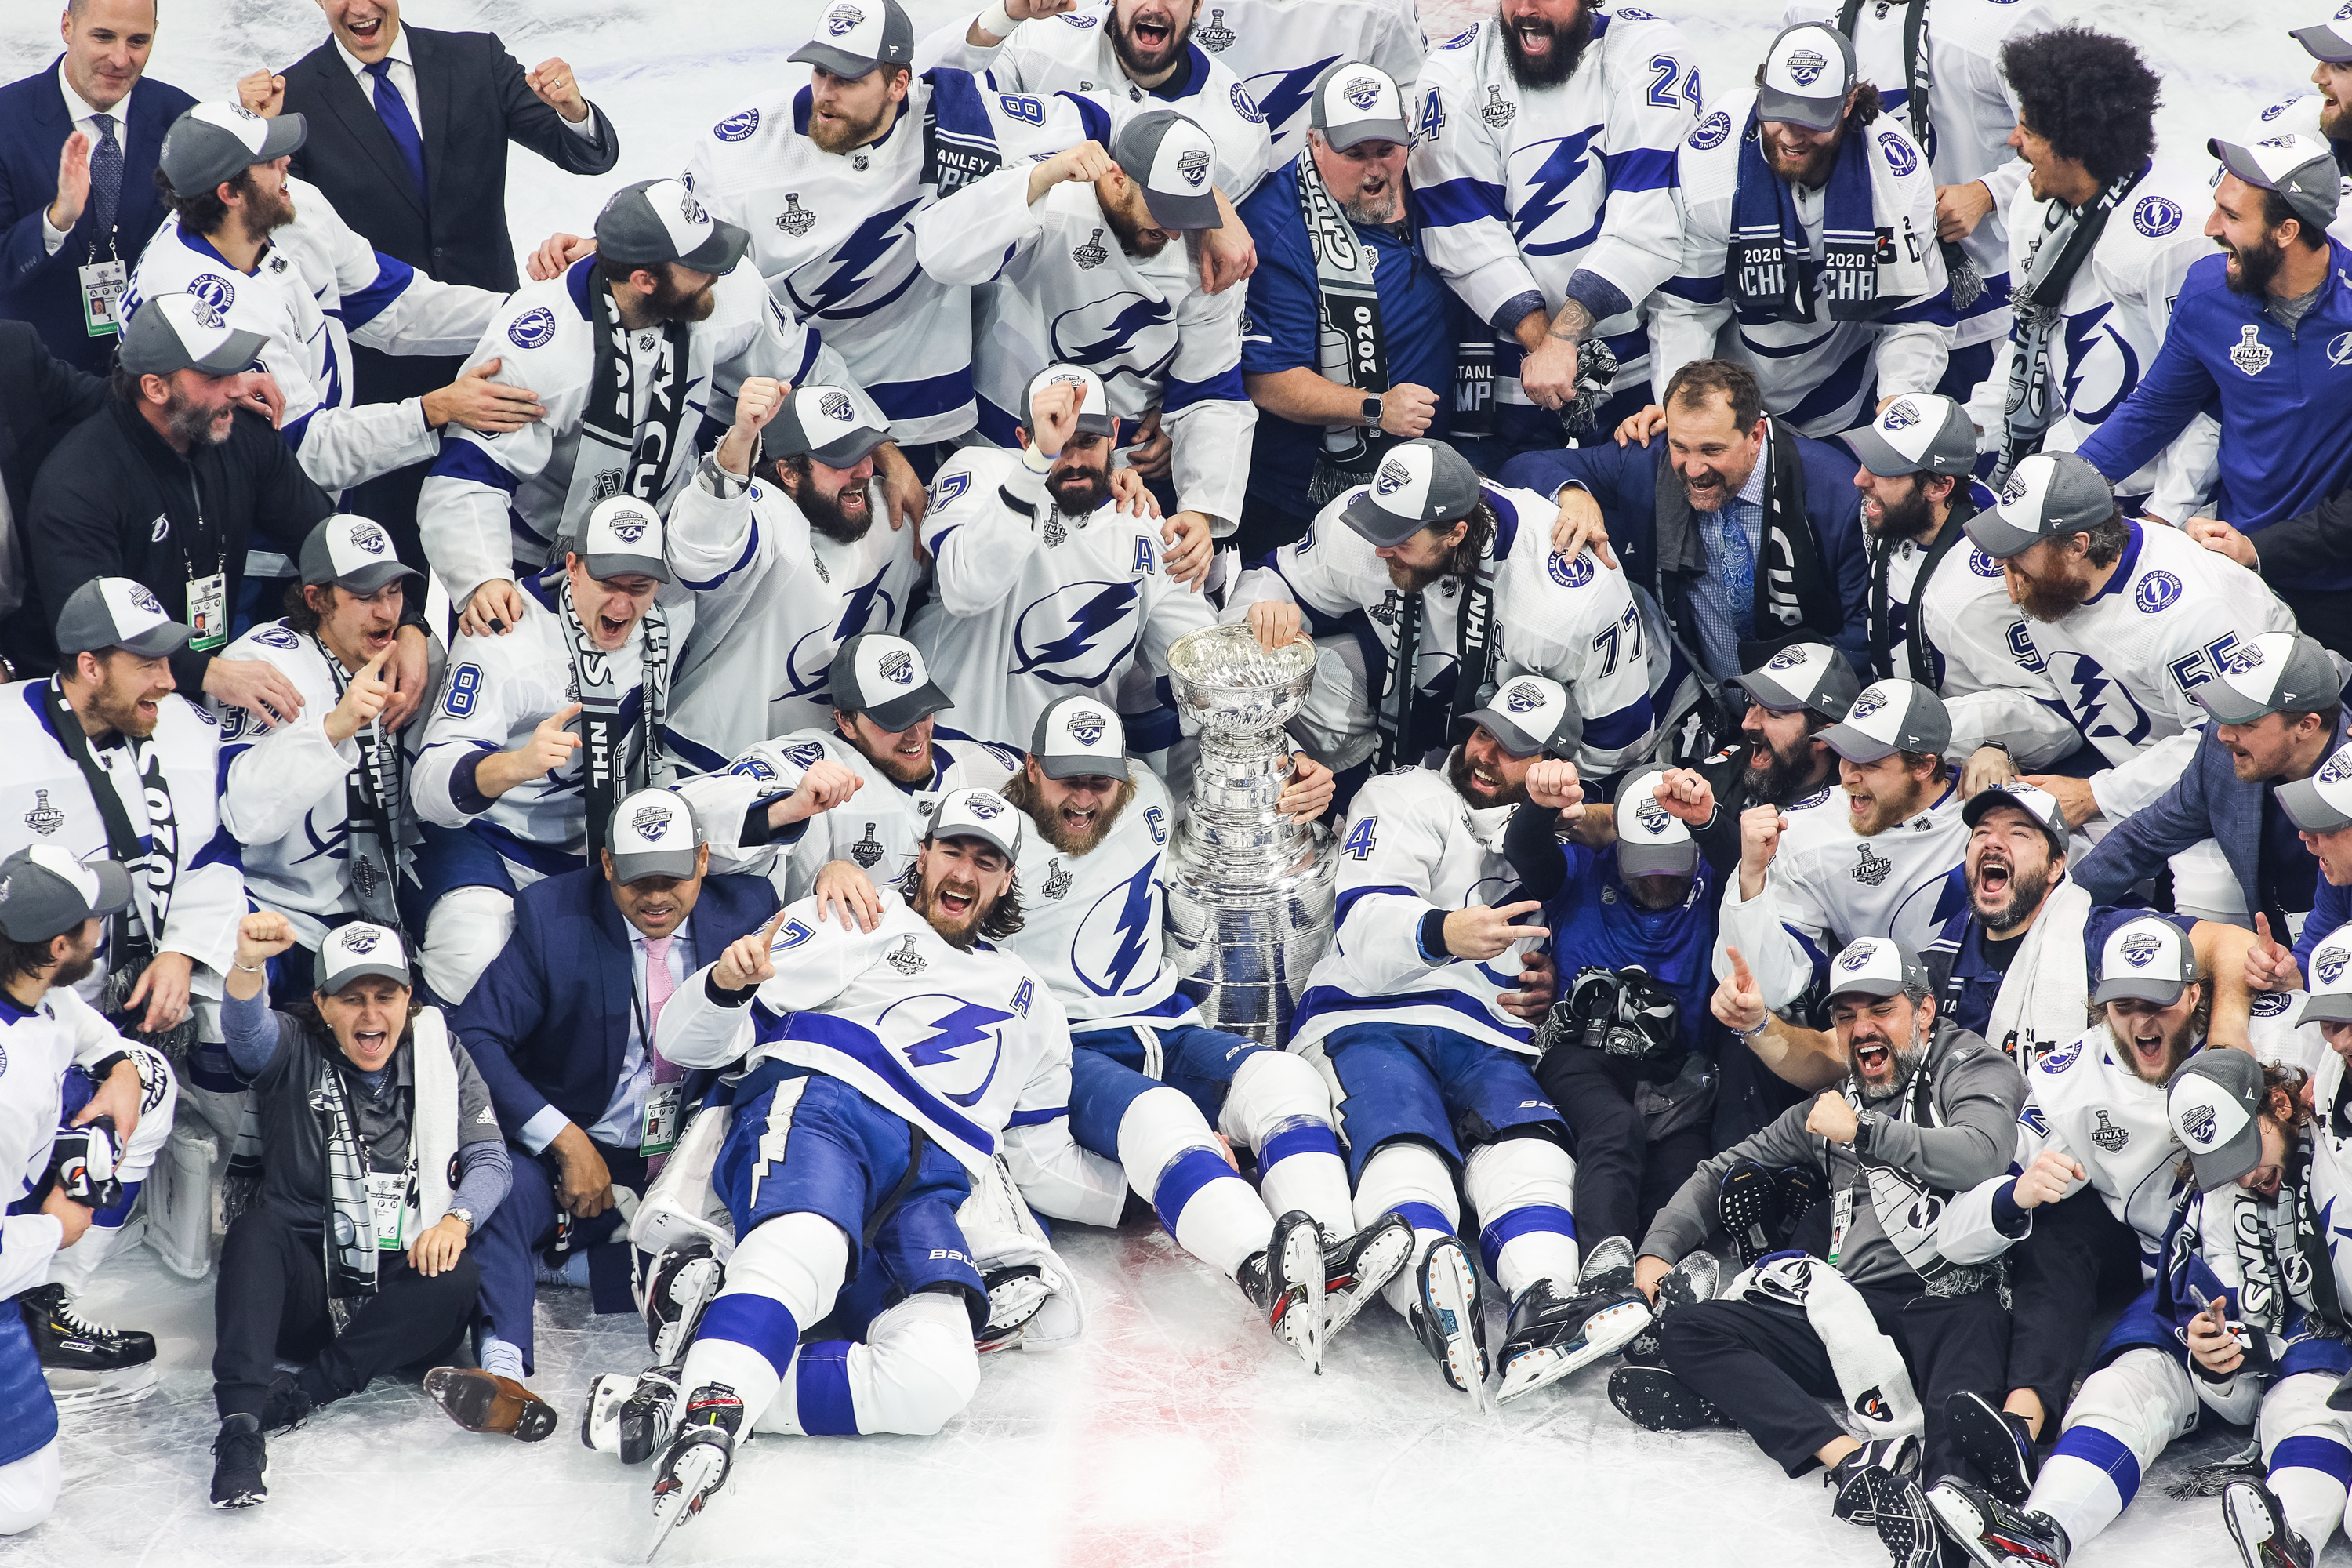 stanley cup ratings pop in tampa especially for lightning s game 6 win https www tampabay com sports lightning 2020 09 30 stanley cup ratings pop in tampa especially for lightnings game 6 win